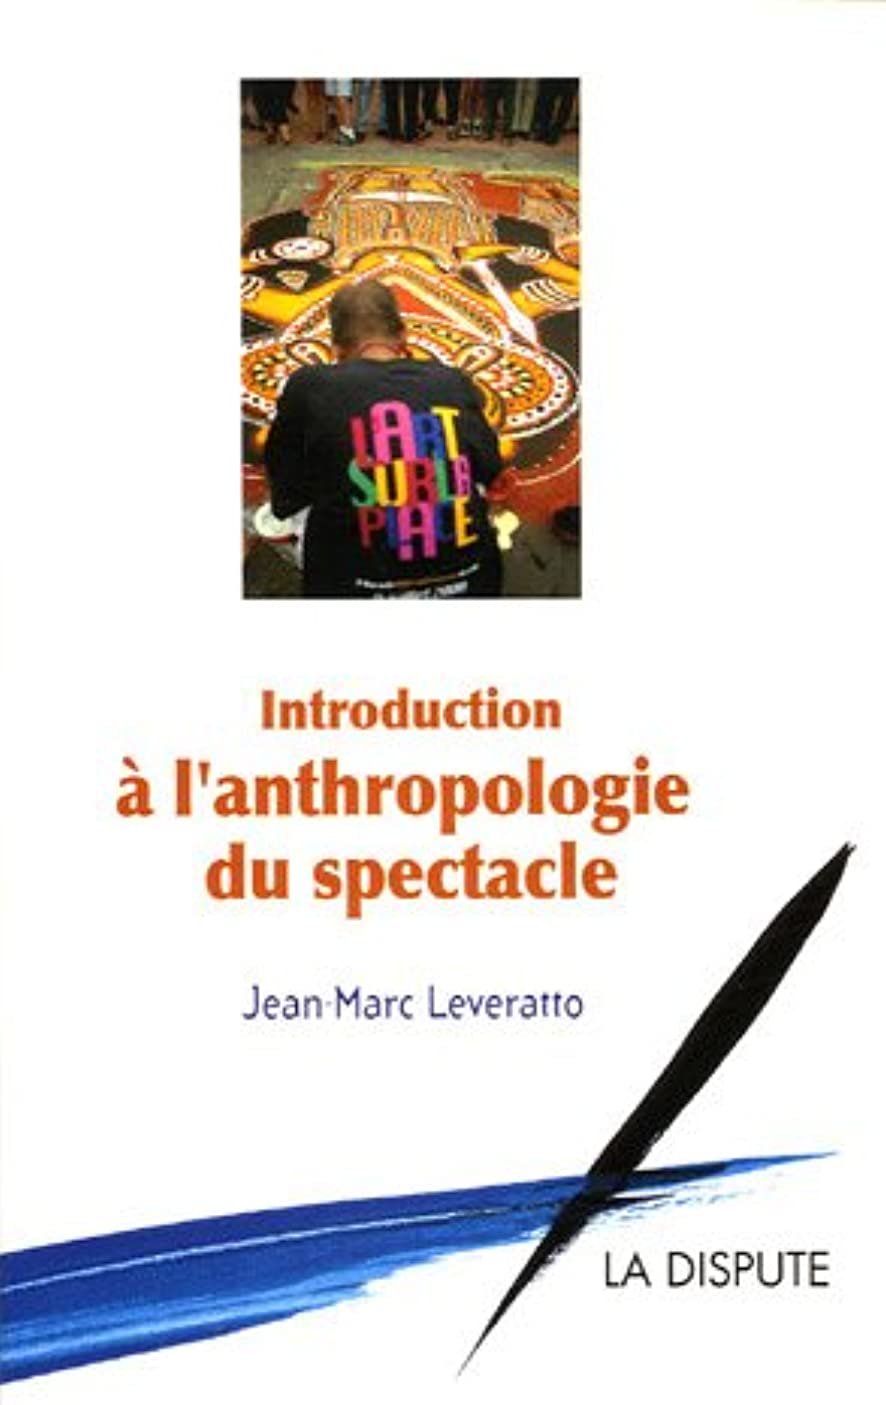 Introduction à l'anthropologie du spectacle